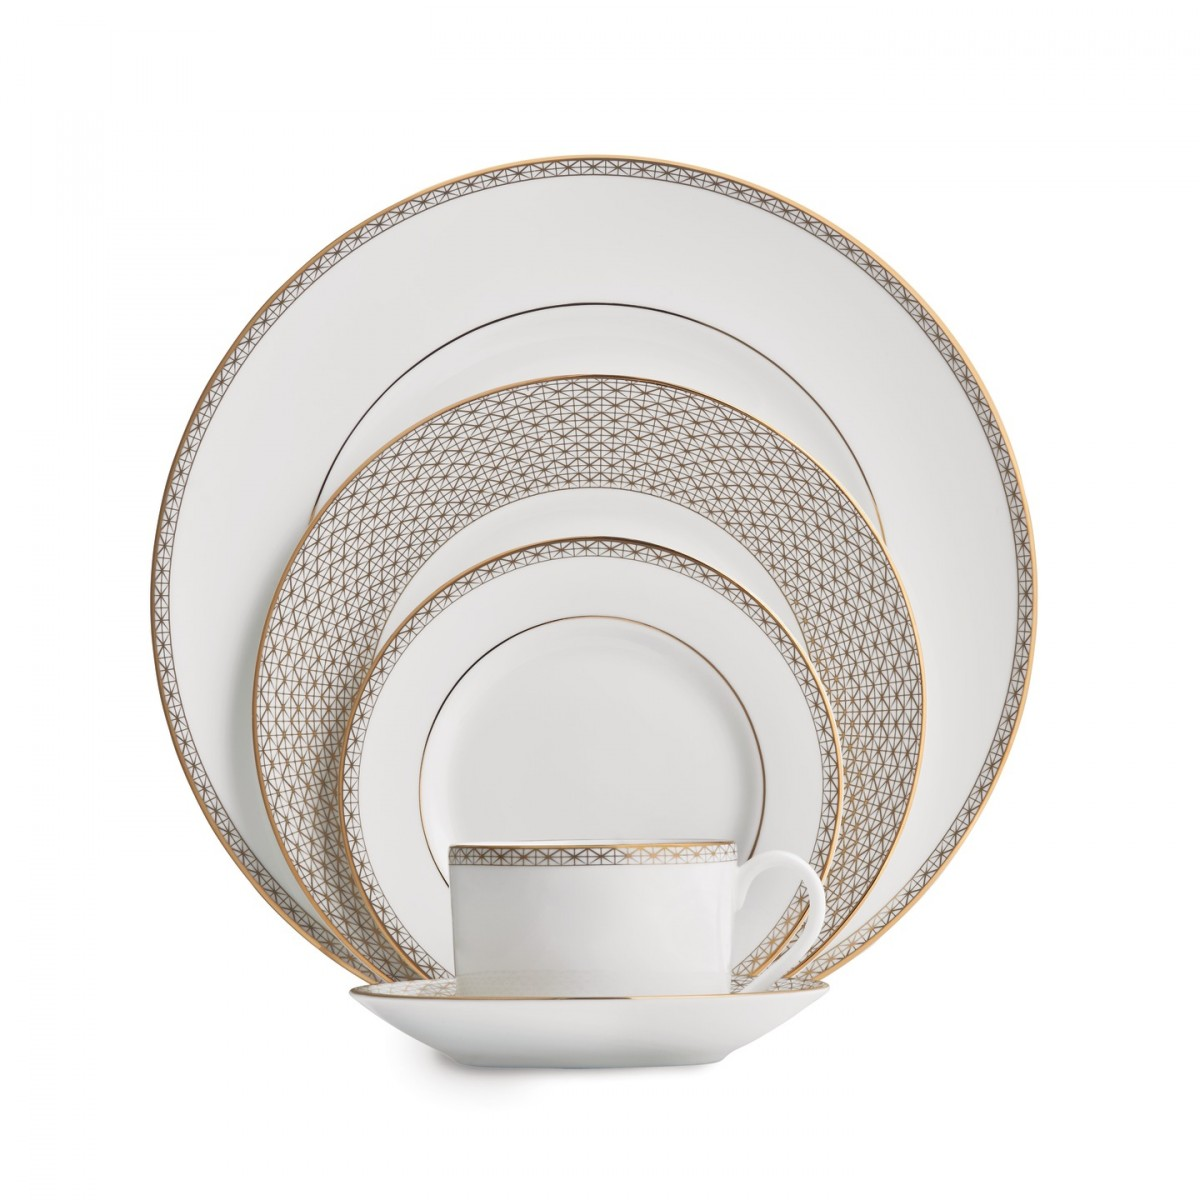 waterford-lismore-diamond-gold-5-piece-place-setting-701587275828.jpg